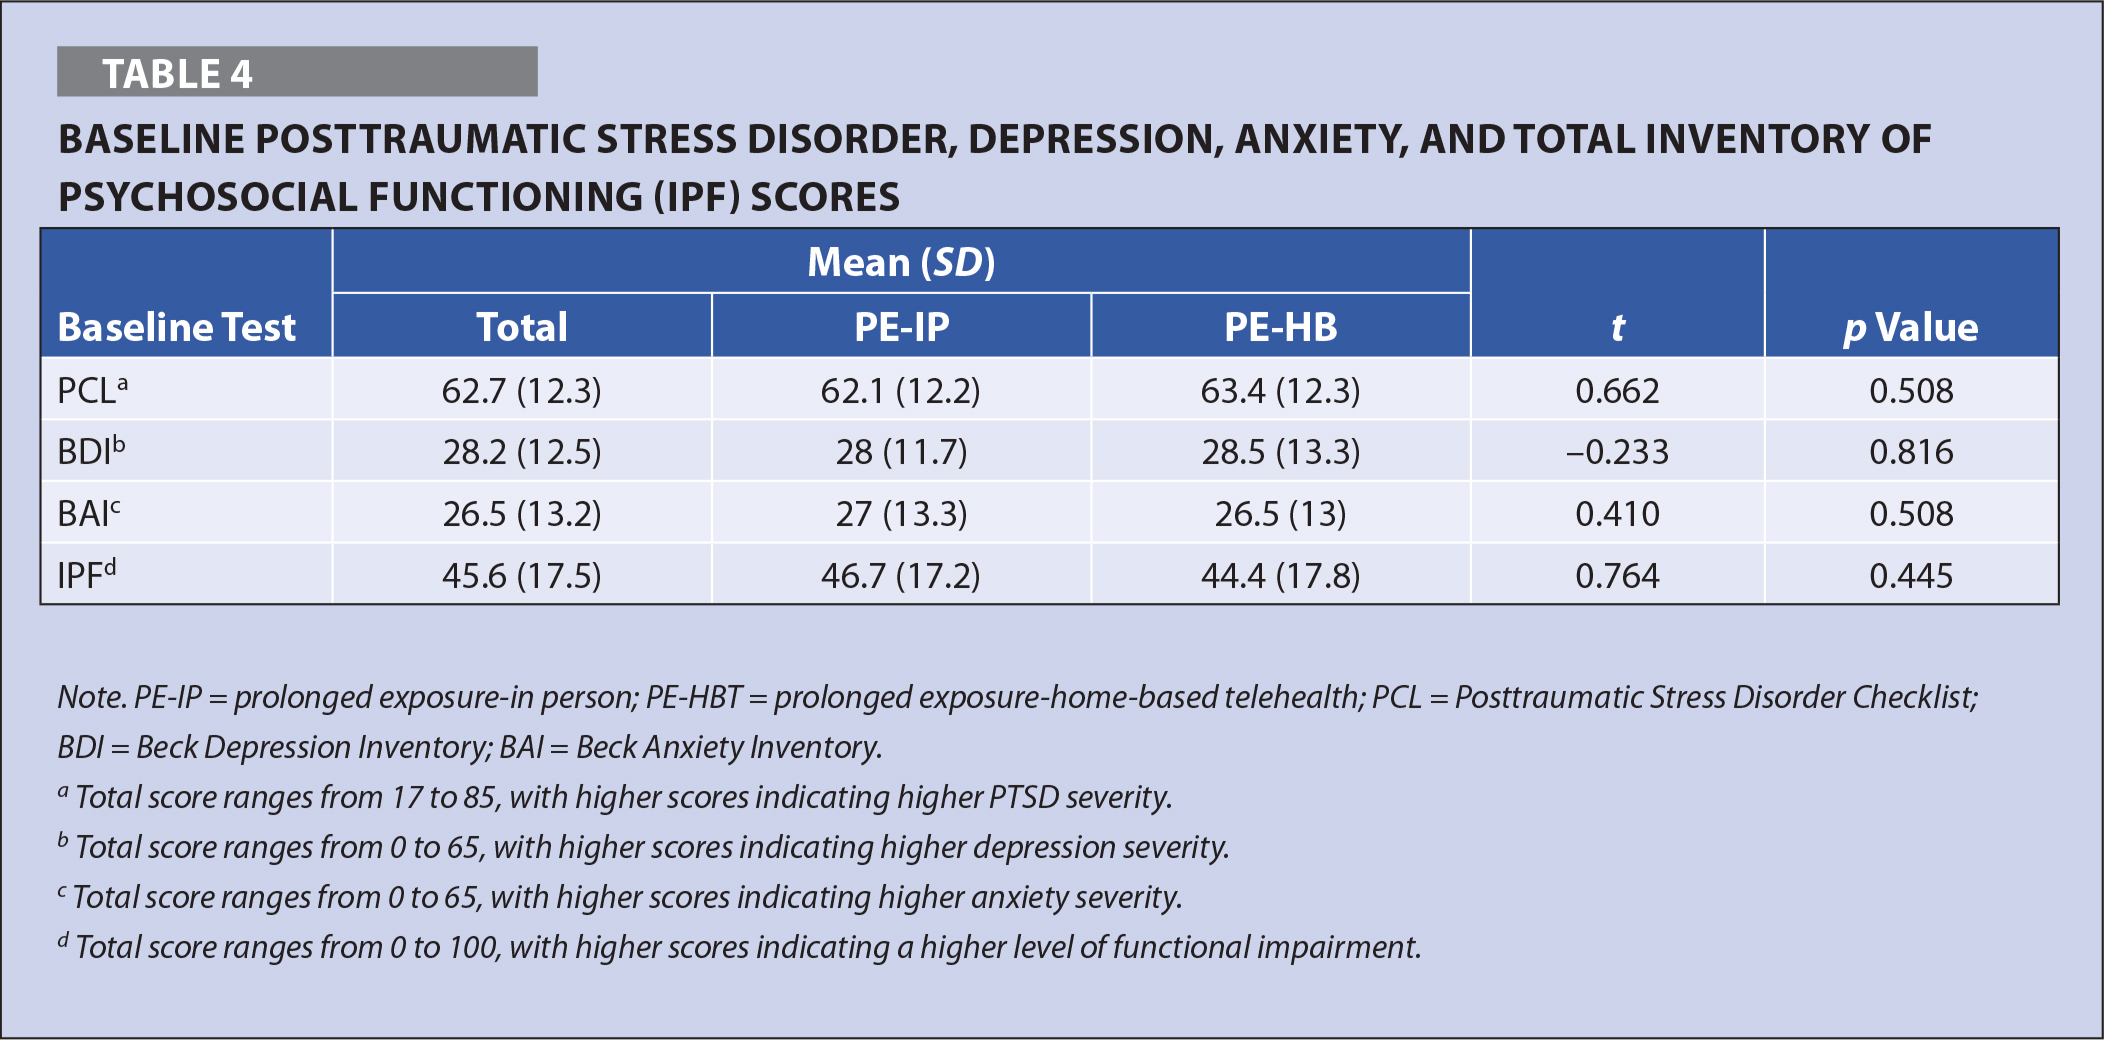 Baseline Posttraumatic Stress Disorder, Depression, Anxiety, And Total Inventory Of Psychosocial Functioning (IPF) Scores